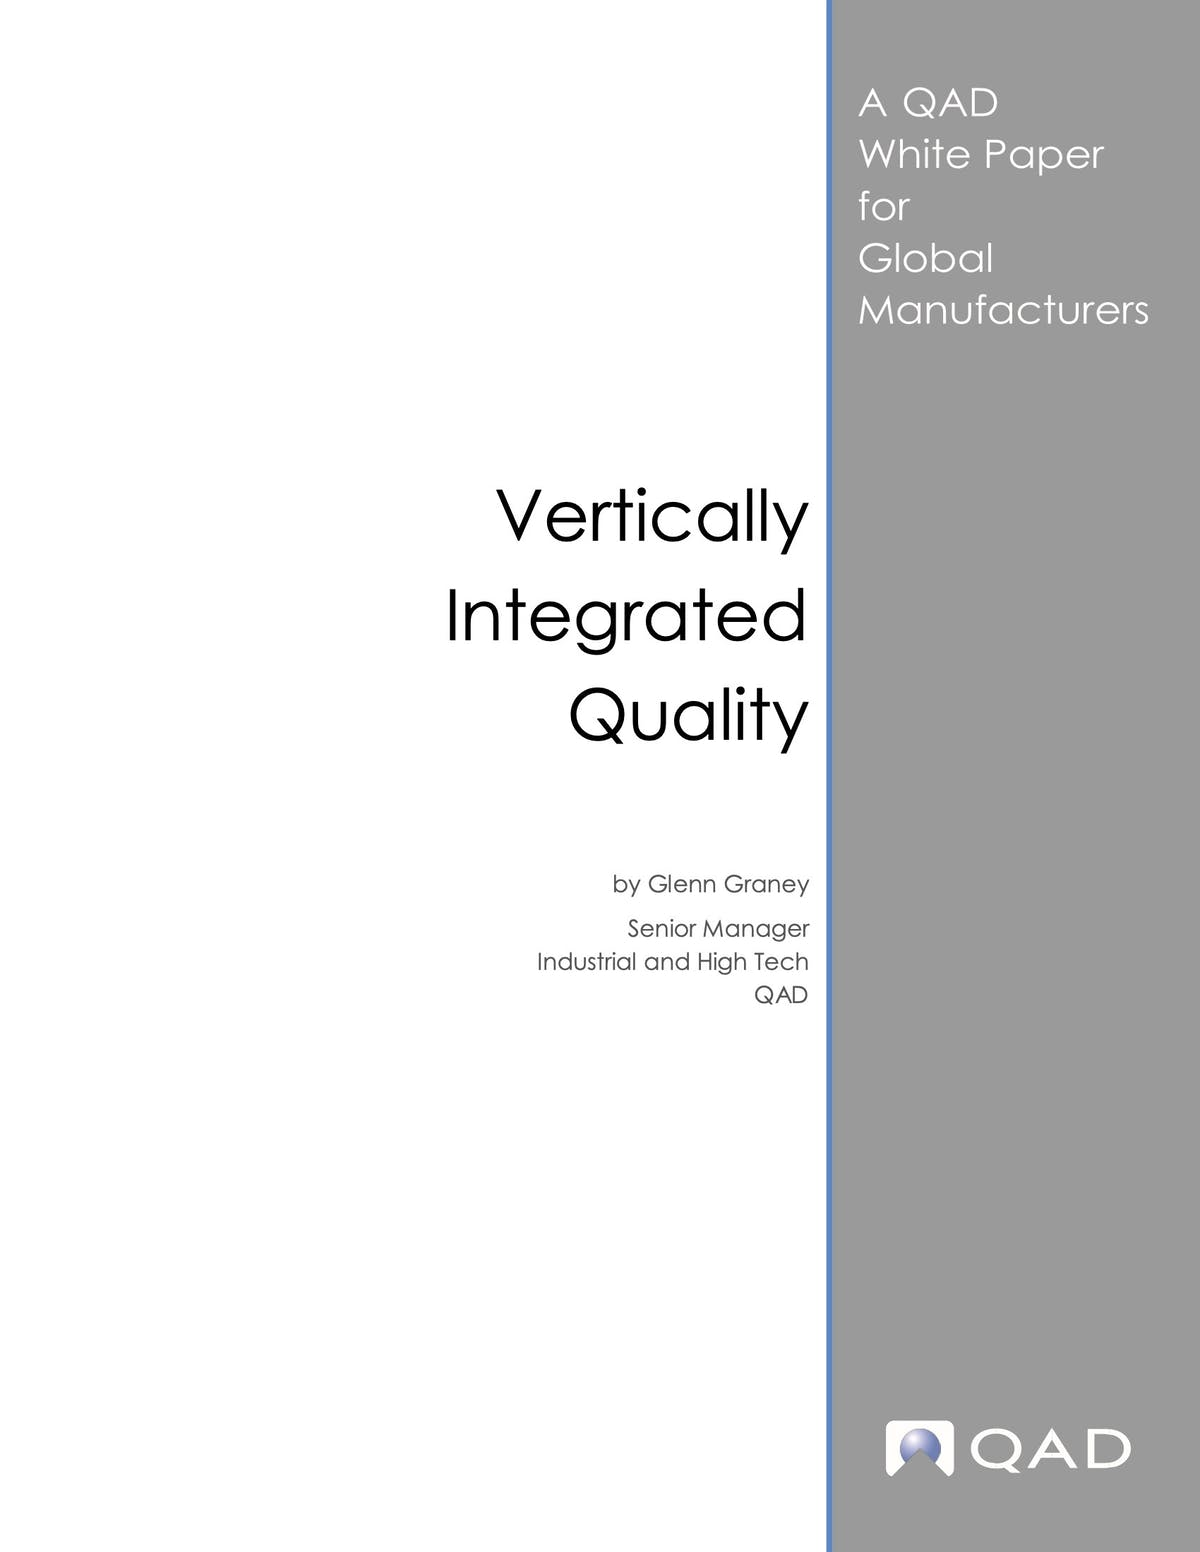 QAD Enterprise Applications White Paper - Vertically Integrated Quality